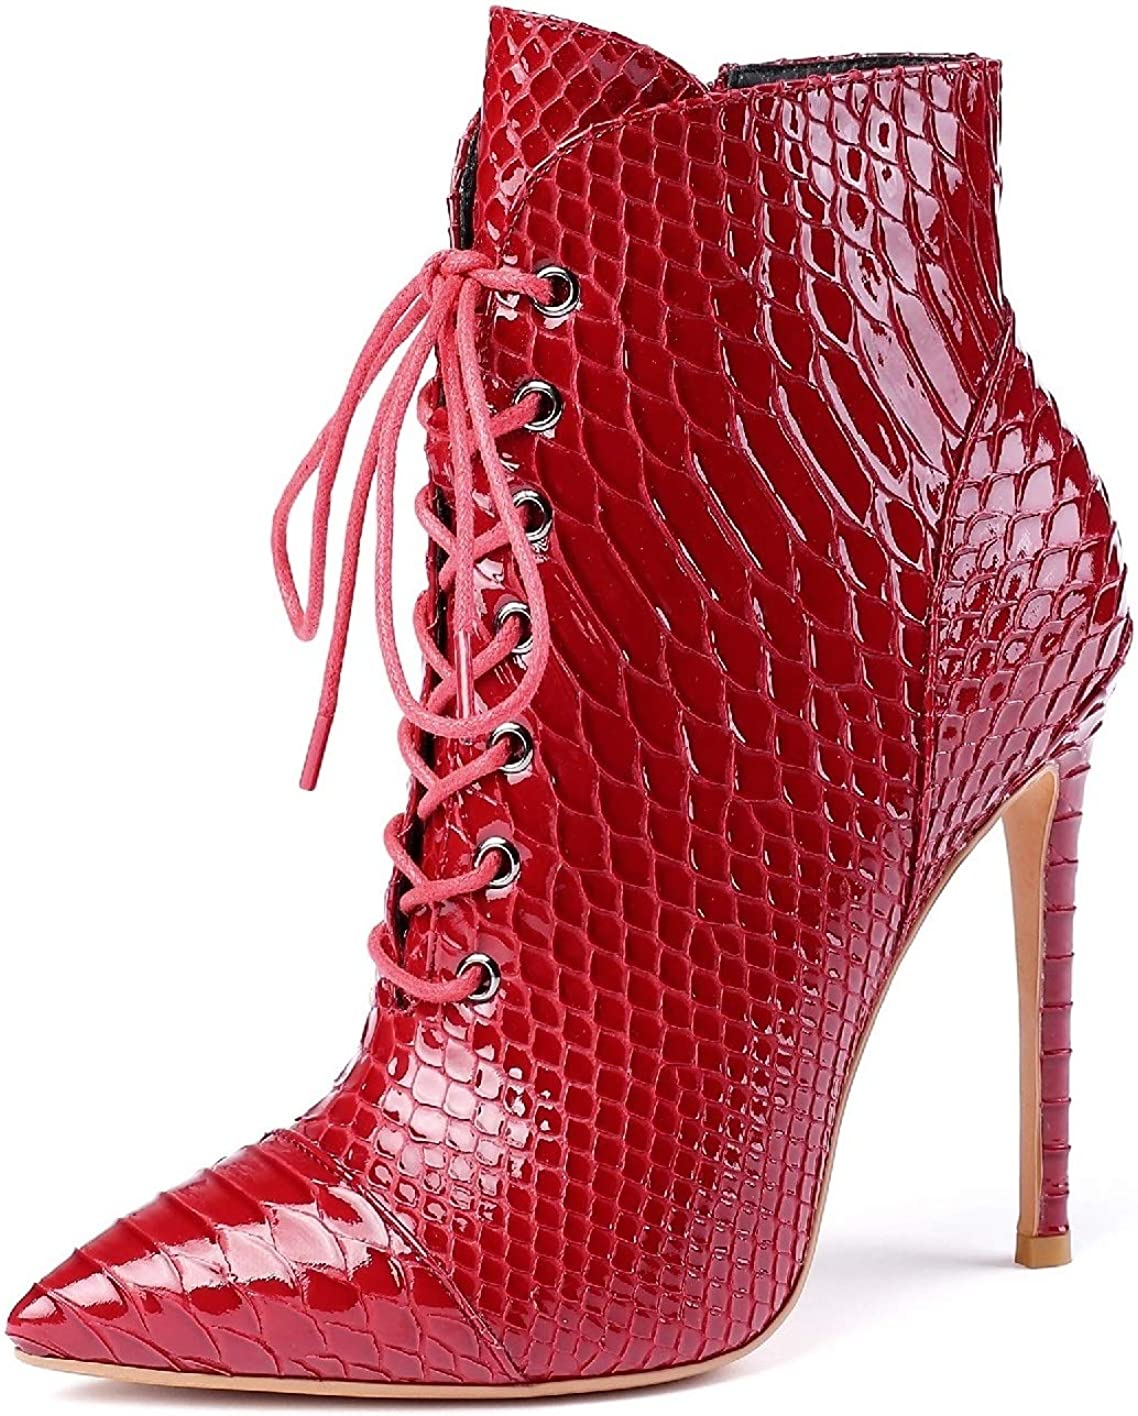 Max 71% OFF Sammitop Women's Free shipping New Pointed Toe Lace Up Ankle Print Animal Sh Boots